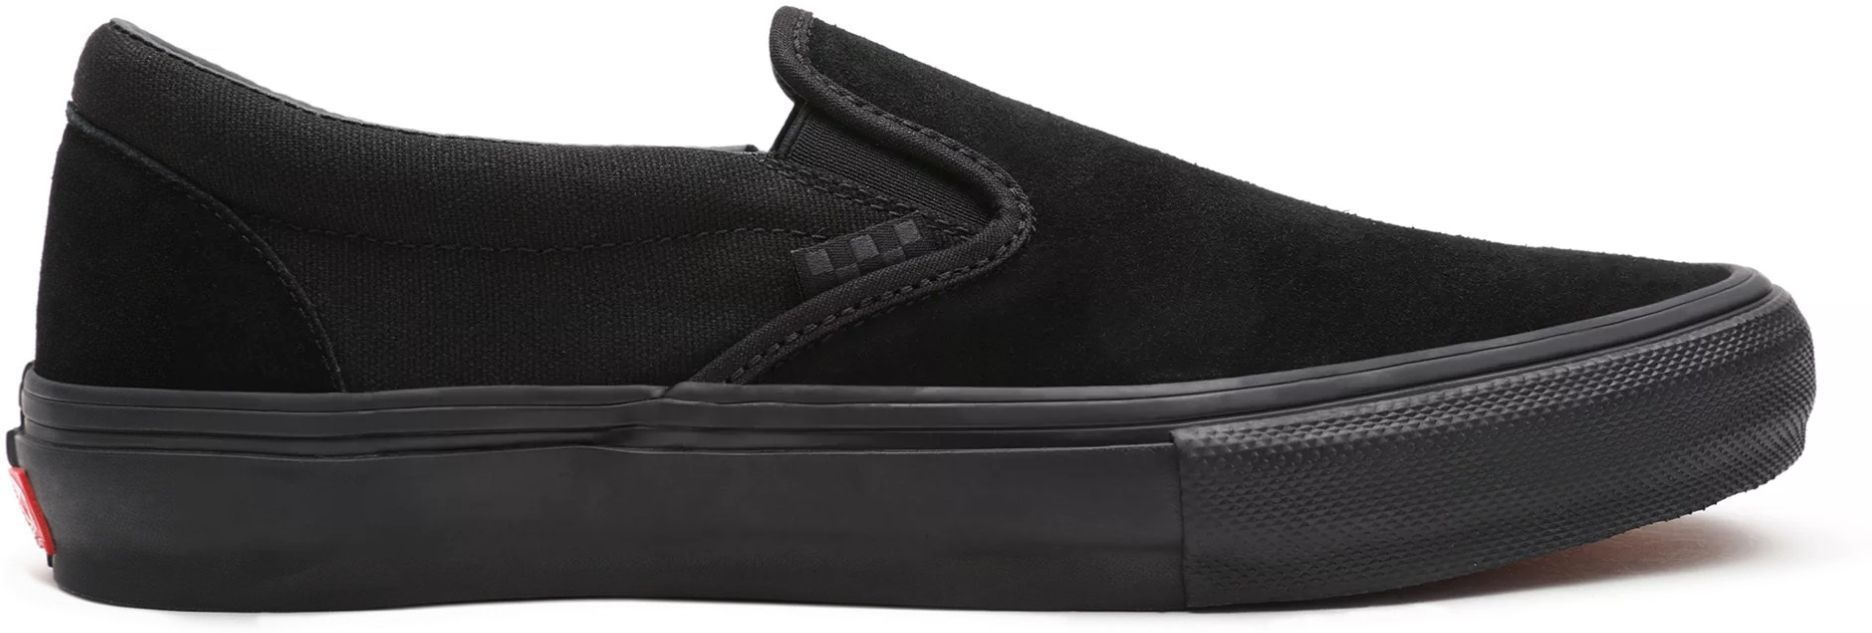 obuwie VANS SKATE SLIP-ON Black/Black